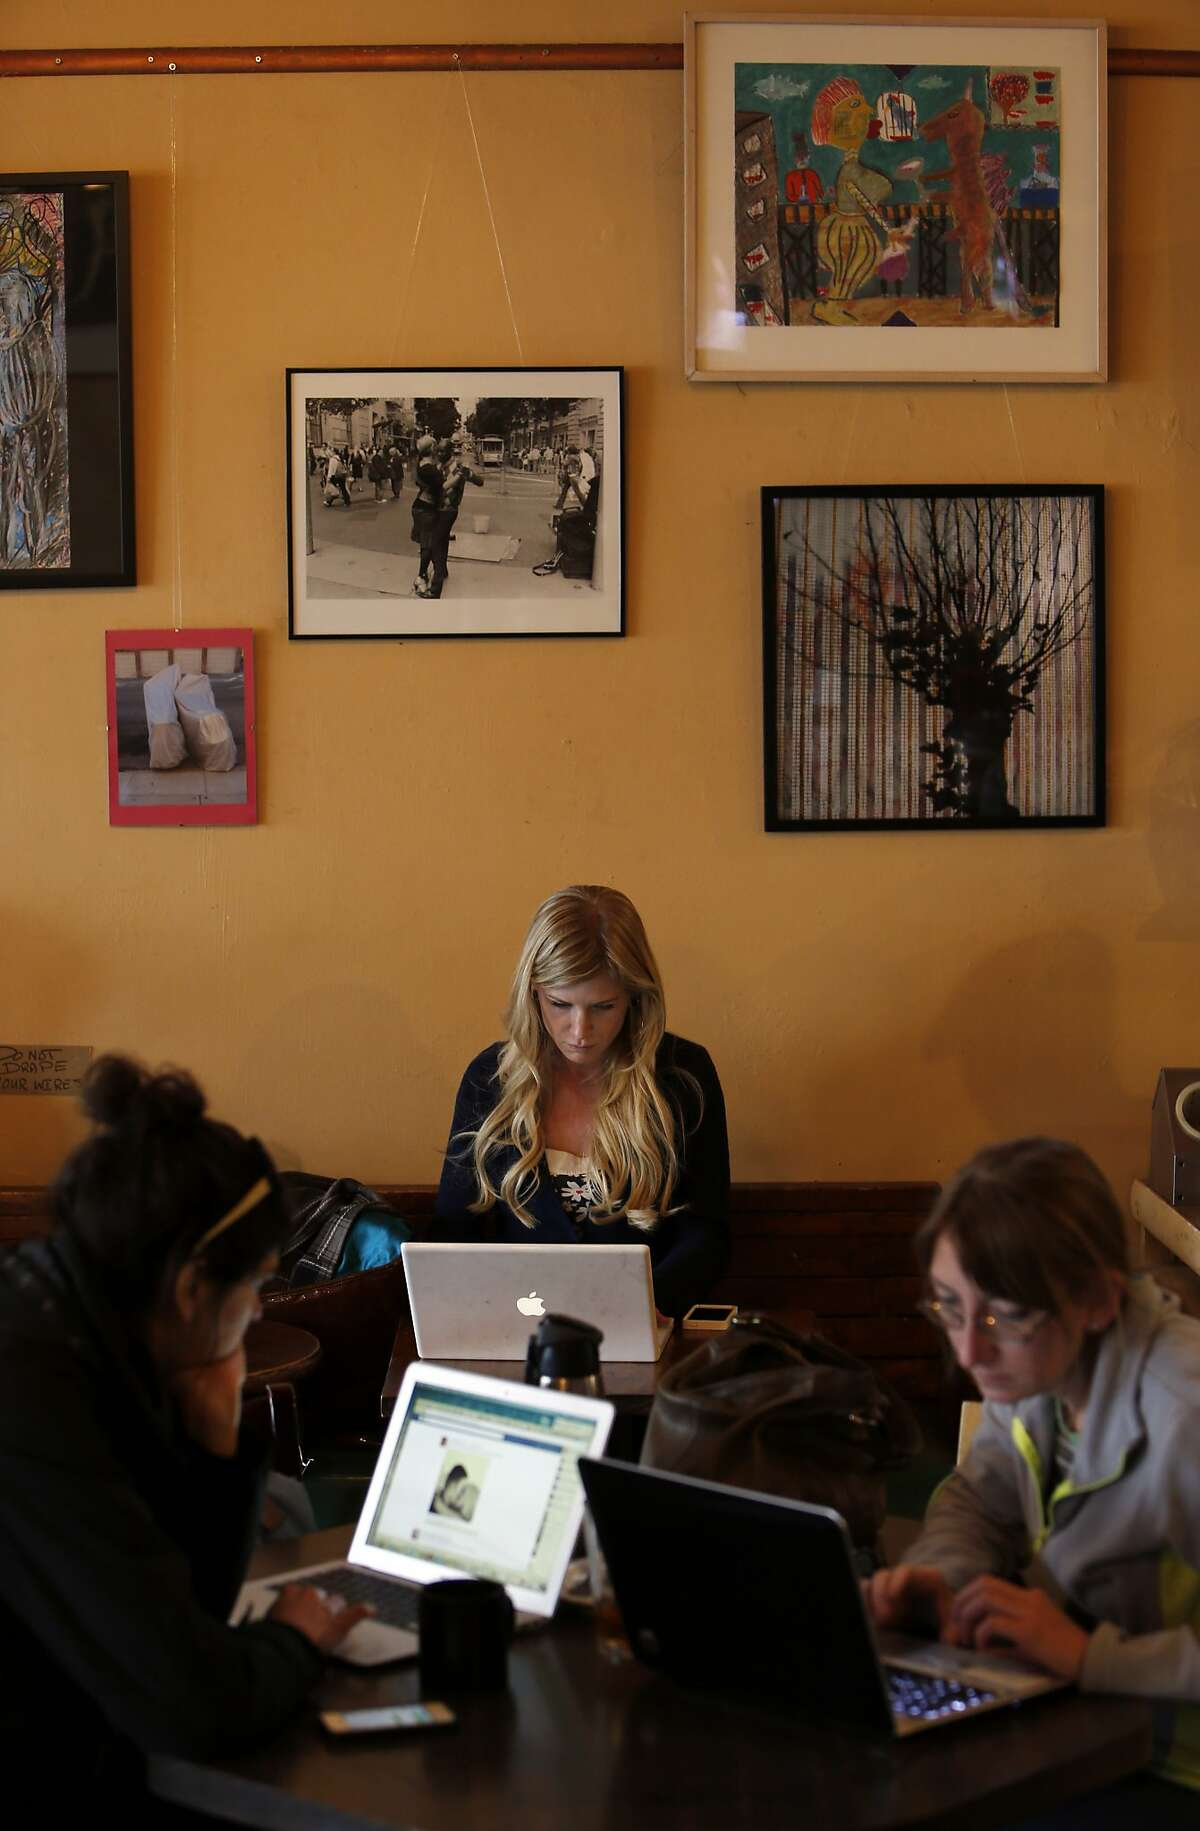 Customers use their laptops at Cafe Boheme on Tuesday, February 4, 2014. The Mission District in San Francisco, Calif., is facing a cultural and economic shift as new